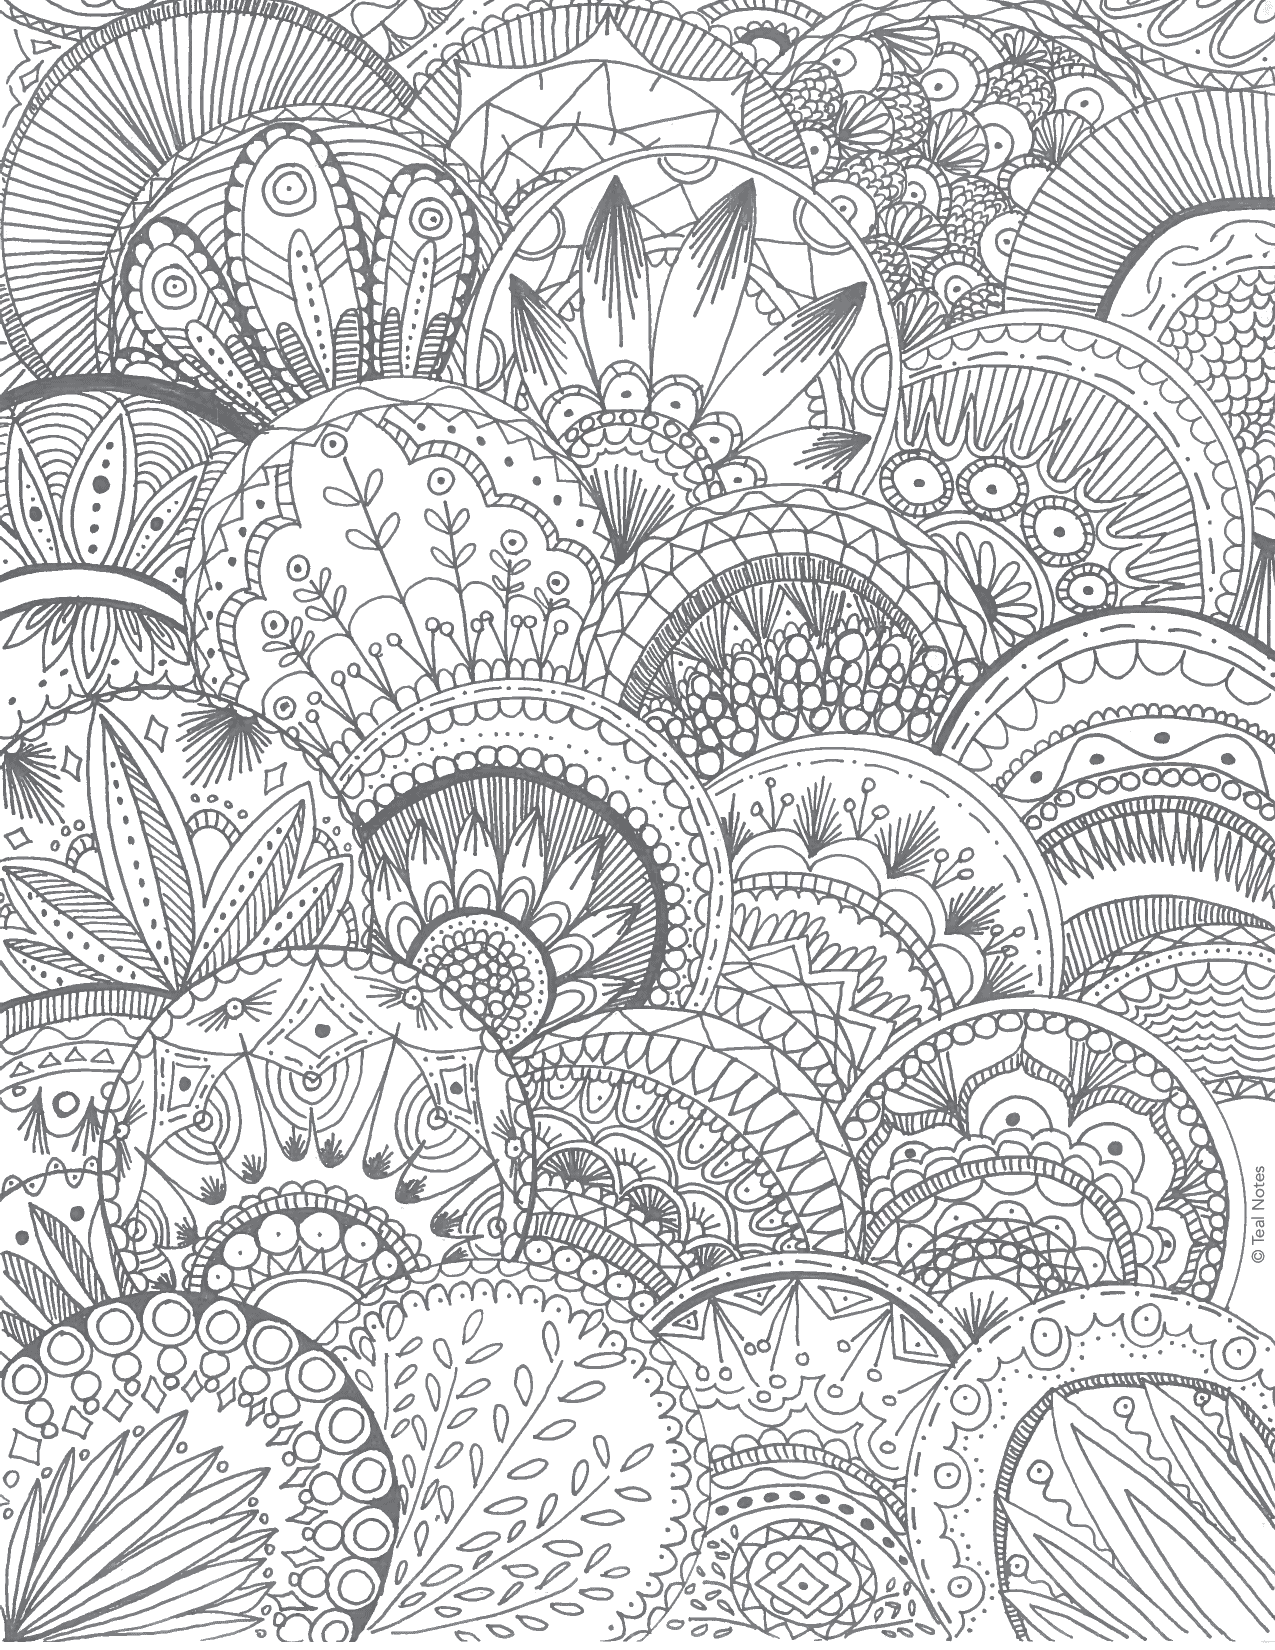 free printable coloring pages: 7 new printable coloring to color and